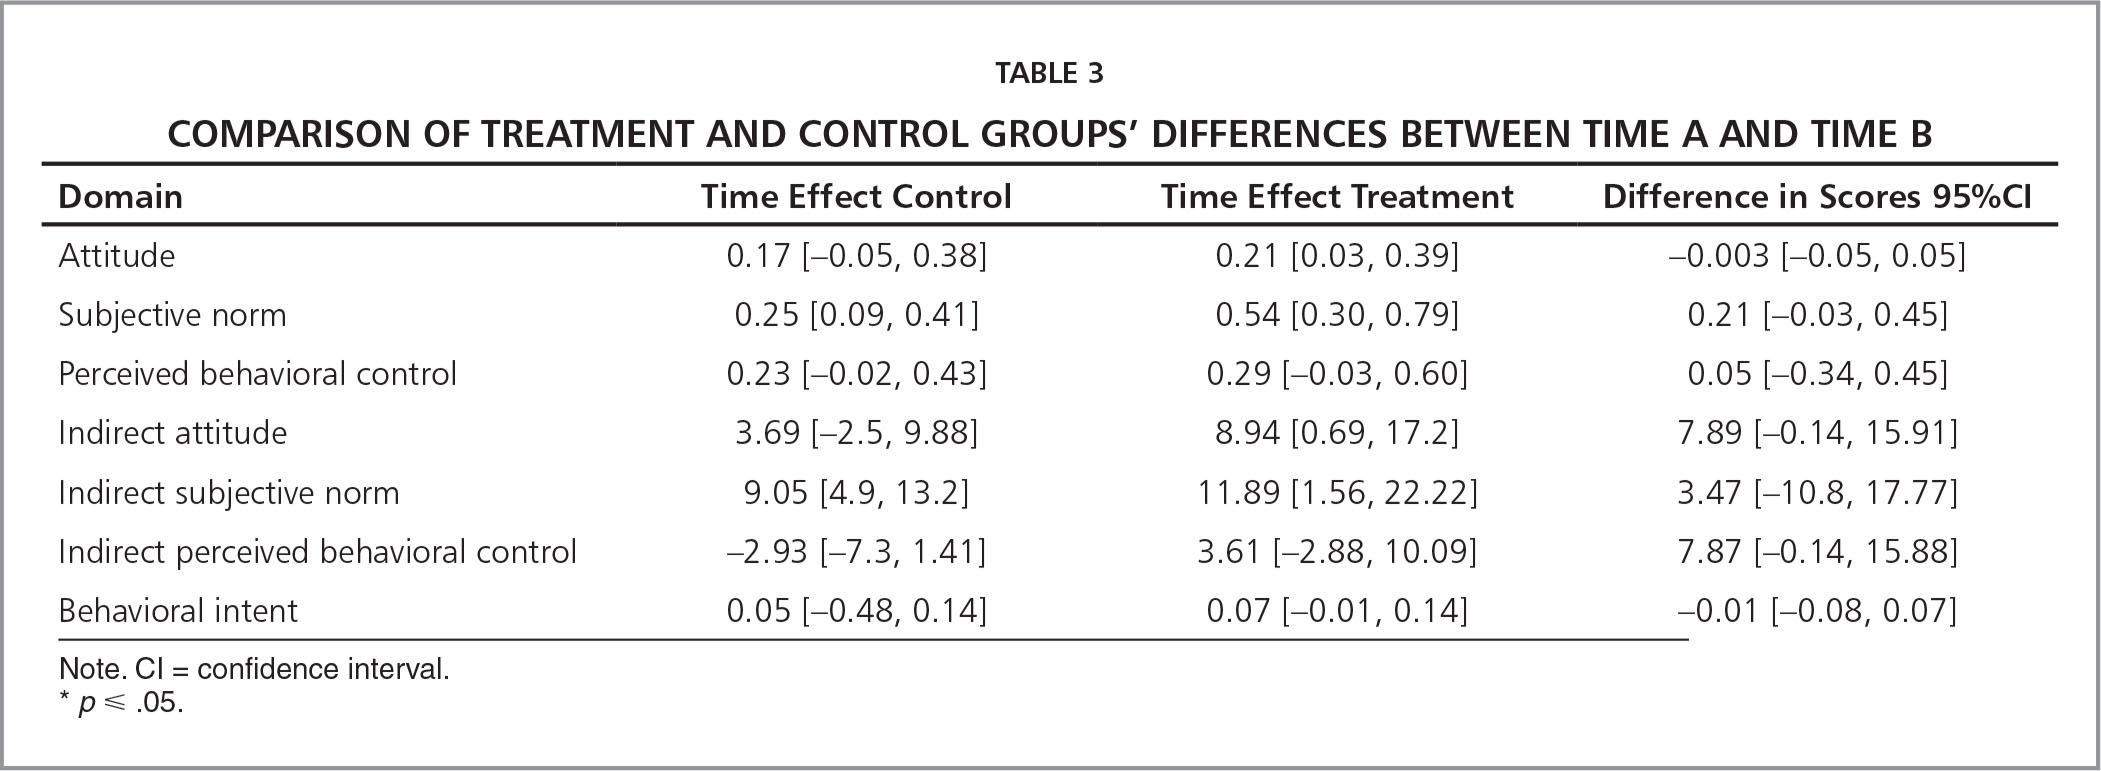 Comparison of Treatment and Control Groups' Differences Between Time A and Time B